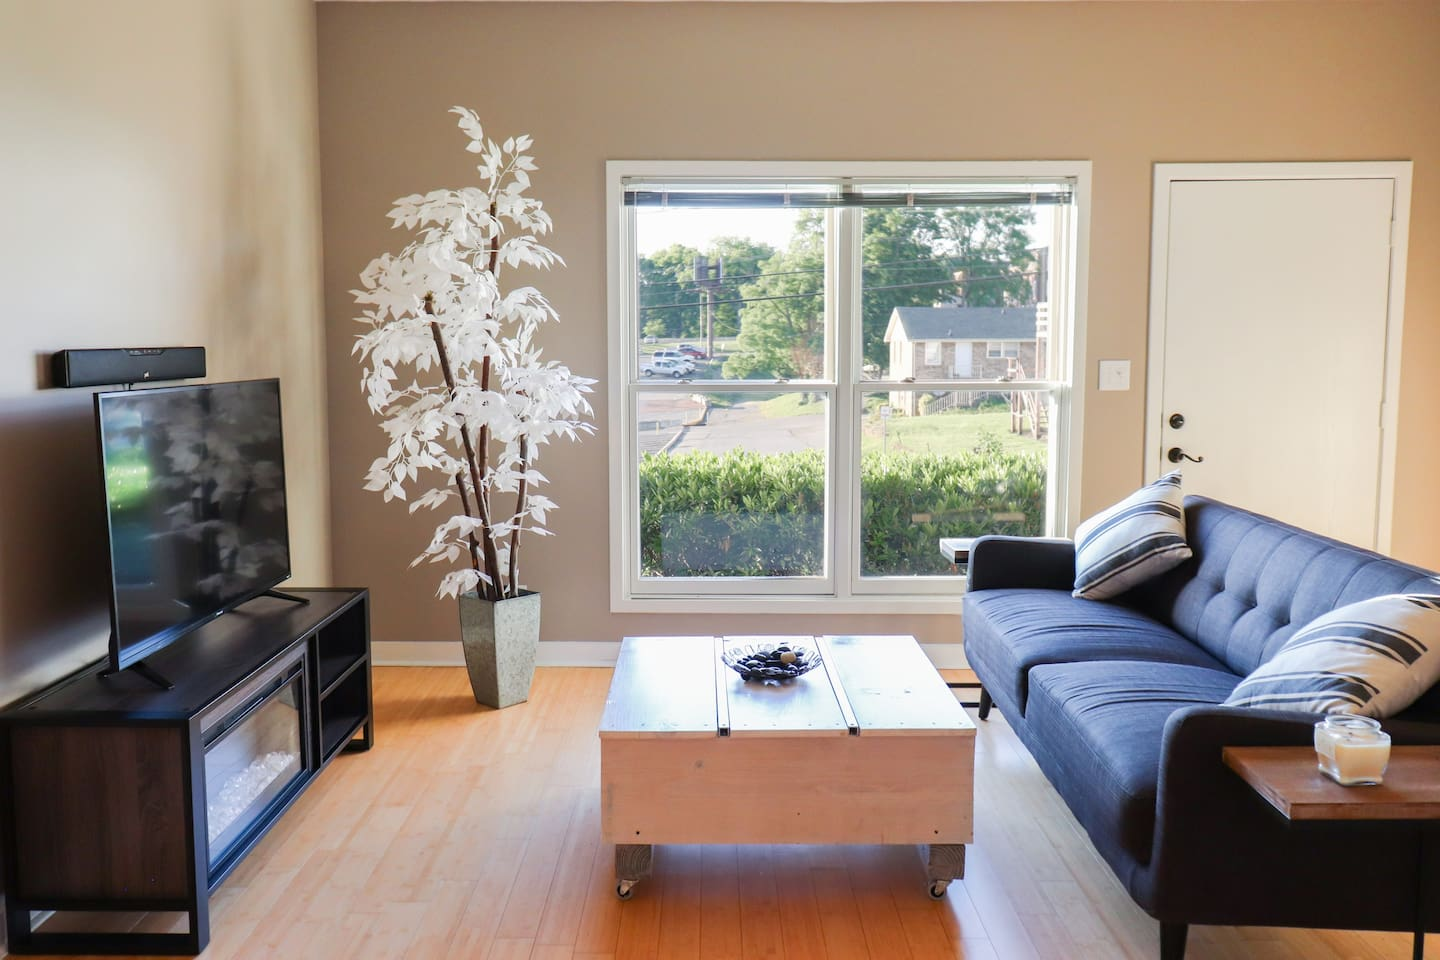 Relax and enjoy this living space!